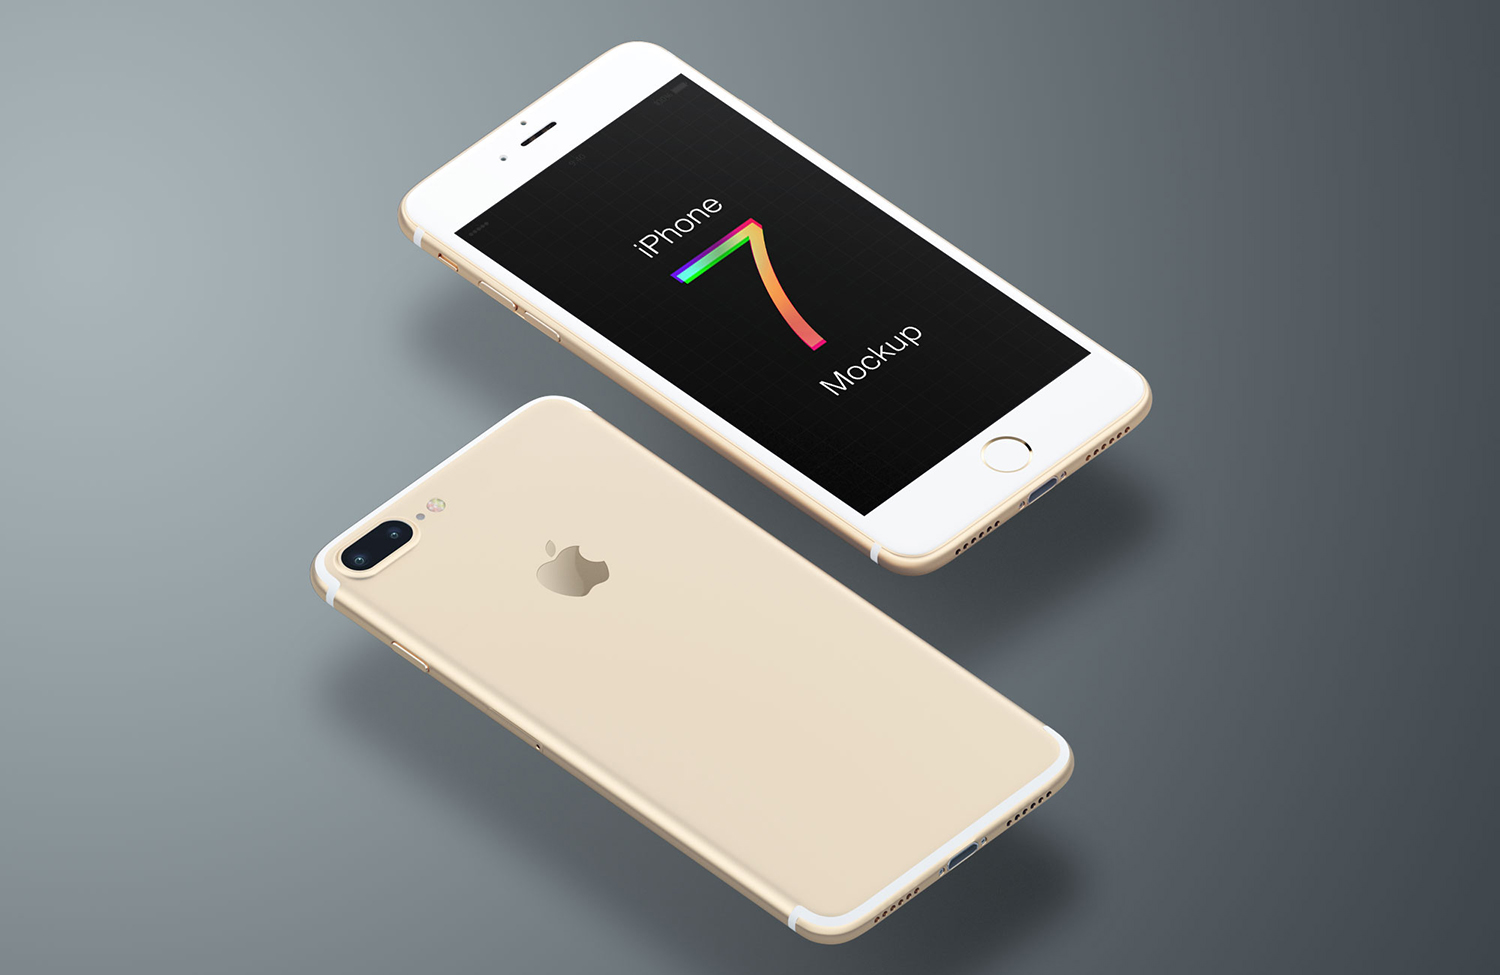 iPhone 7 Gold Mockup